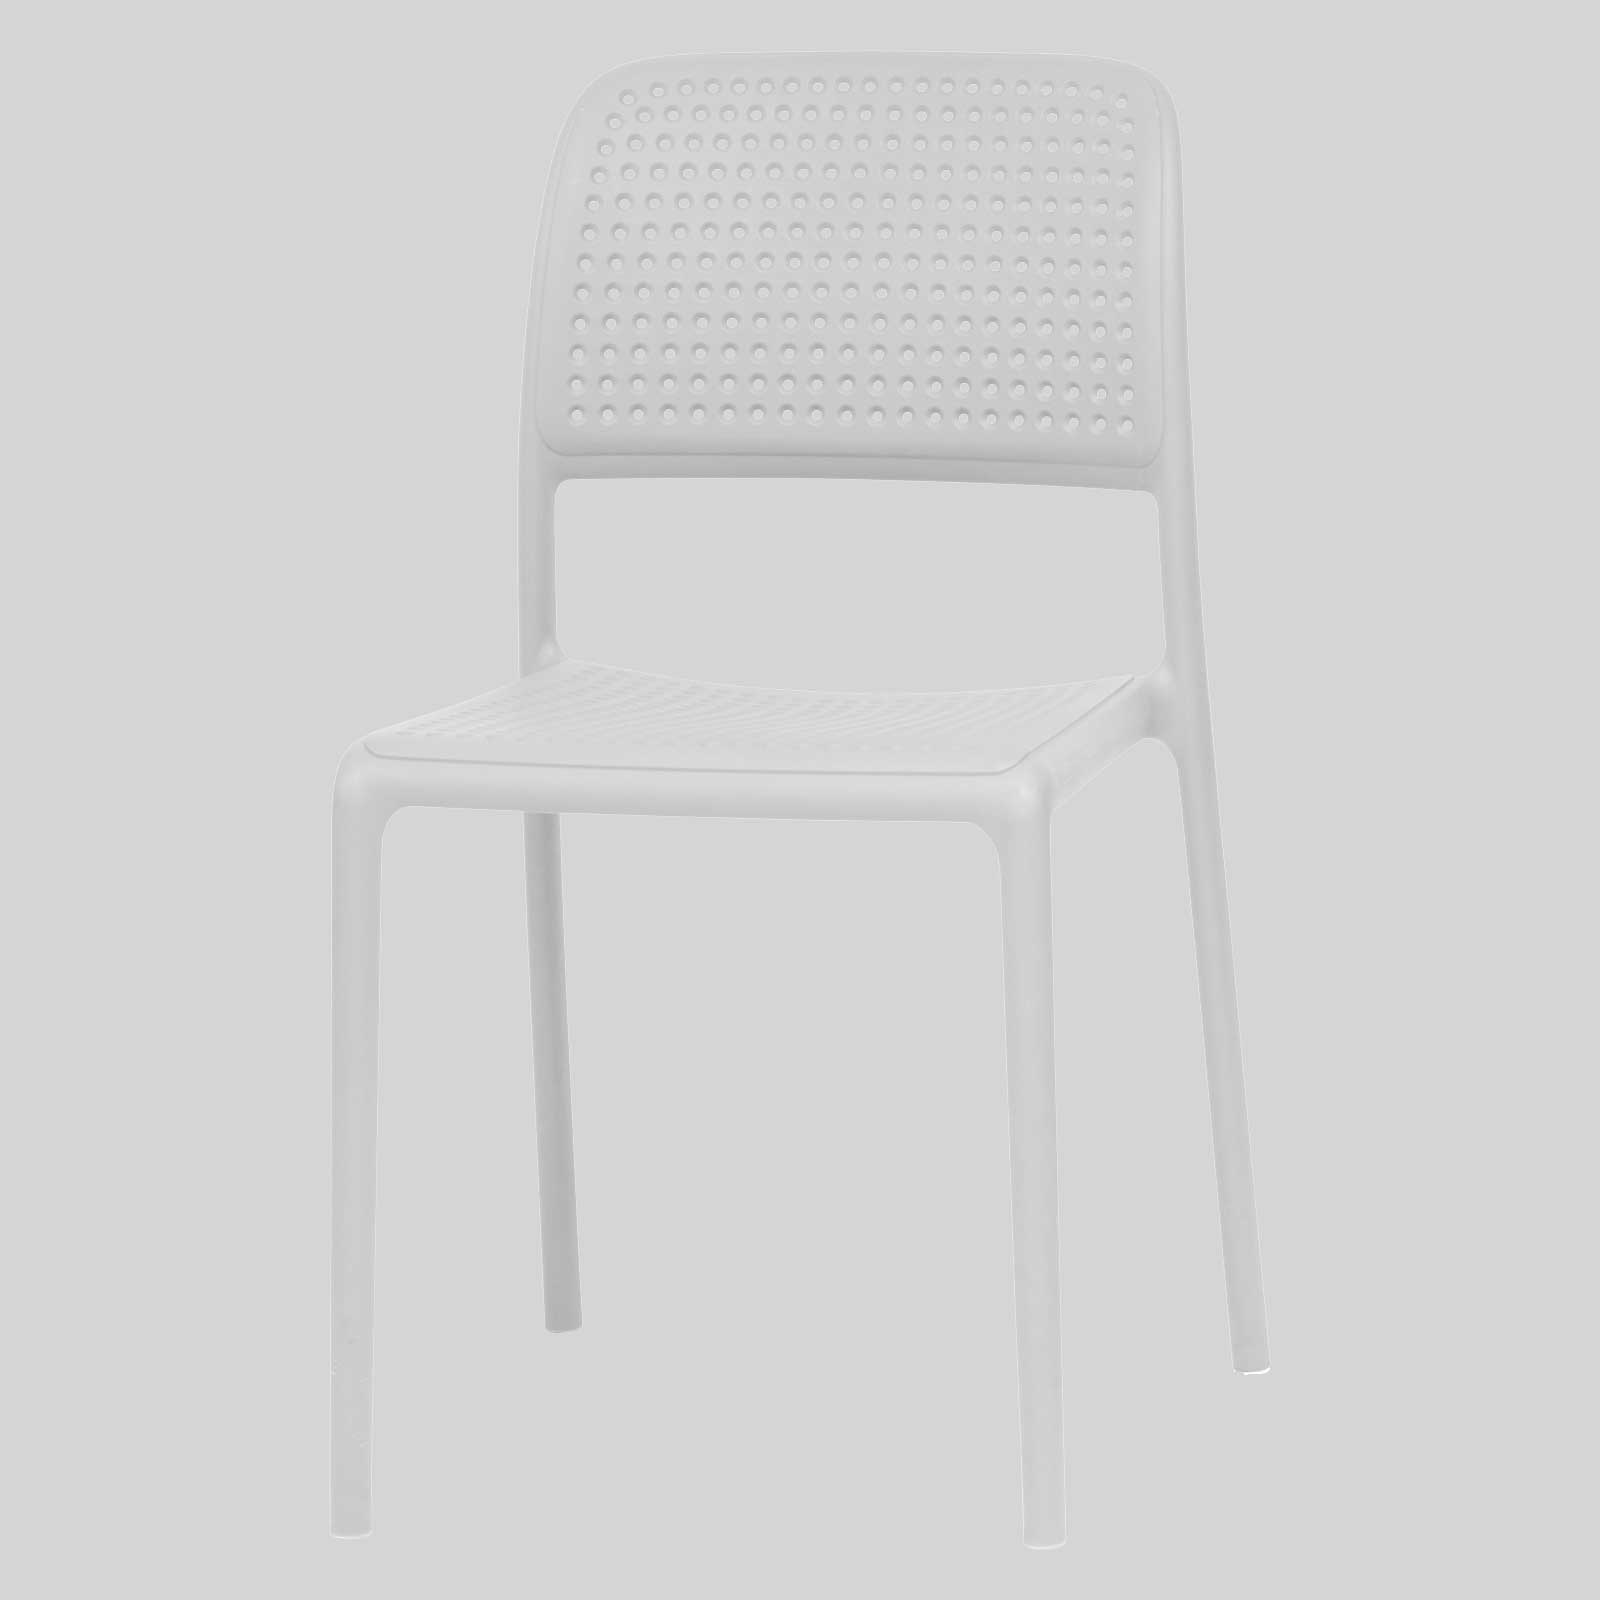 outdoor chairs chair stylish buck plastic rooms com of bomelconsult set new cool chairmodern white erik dining size enchanting furniture full modern fresh